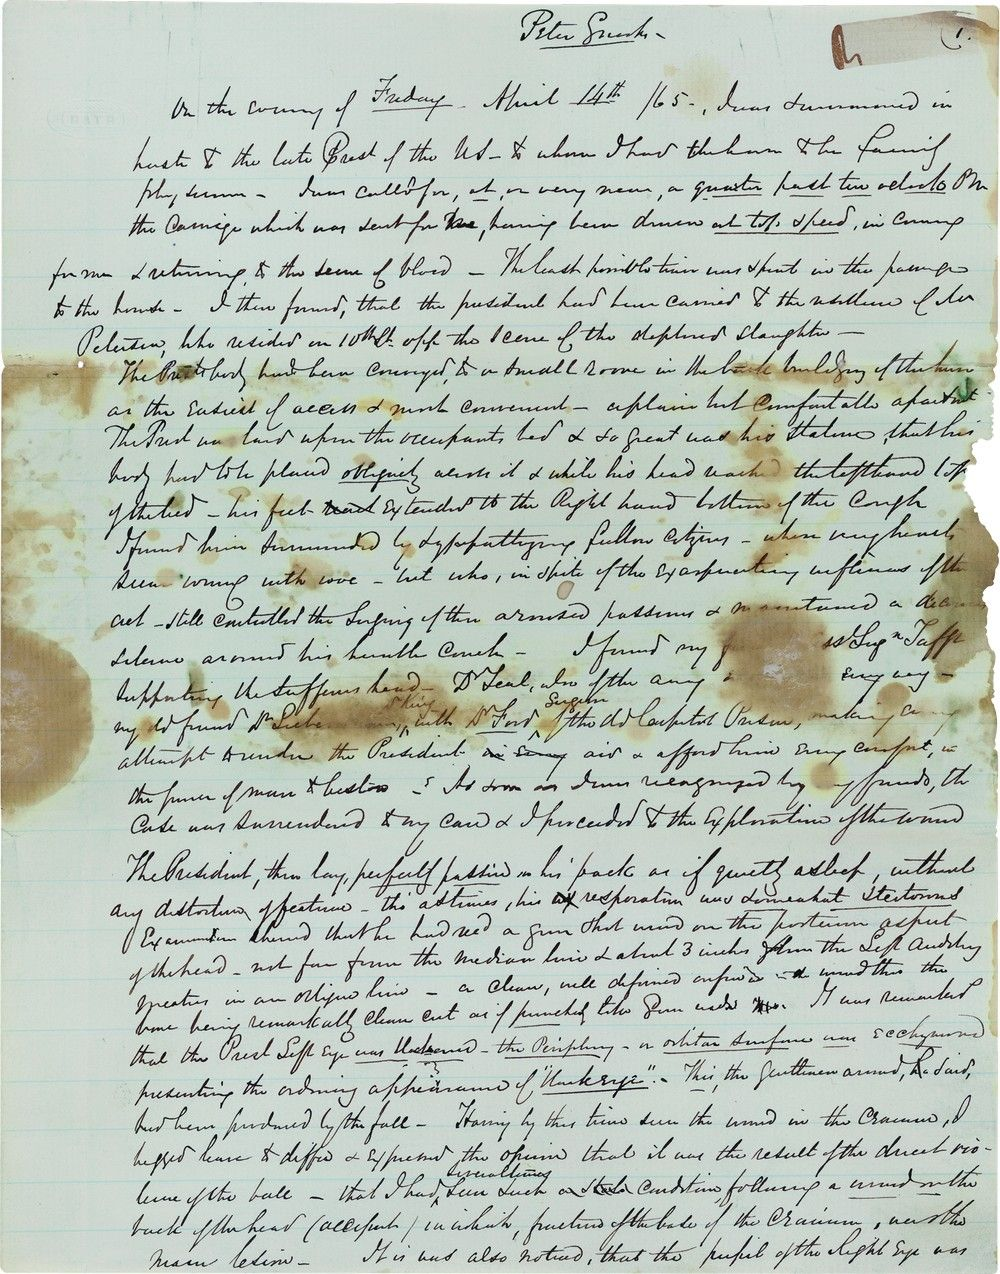 Abraham Lincoln's Final Hours, Death, and Autopsy Report Documented by Dr. Robert Stone